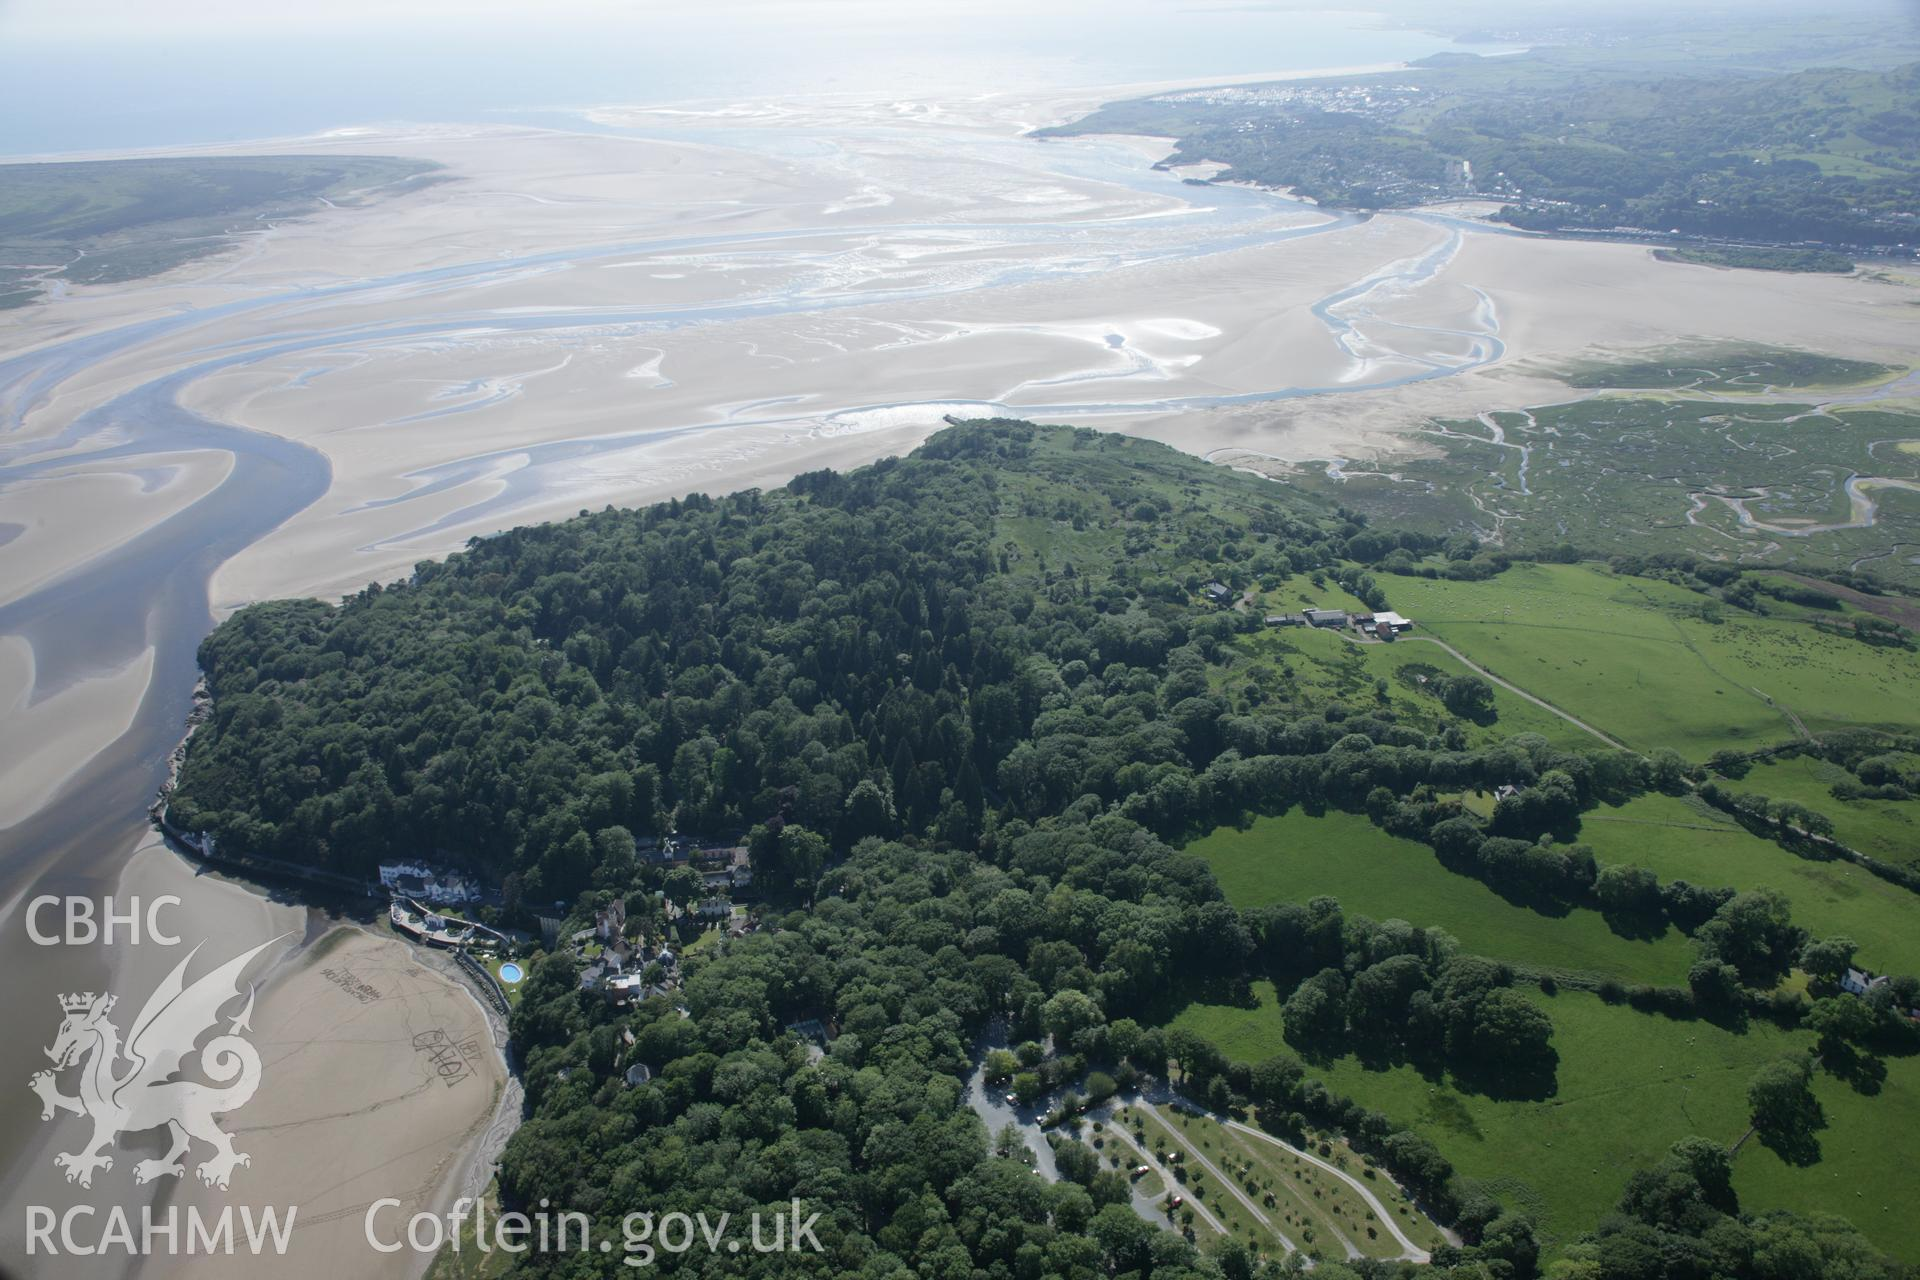 RCAHMW digital colour oblique photograph of Portmeirion viewed from the east. Taken on 08/06/2005 by T.G. Driver.